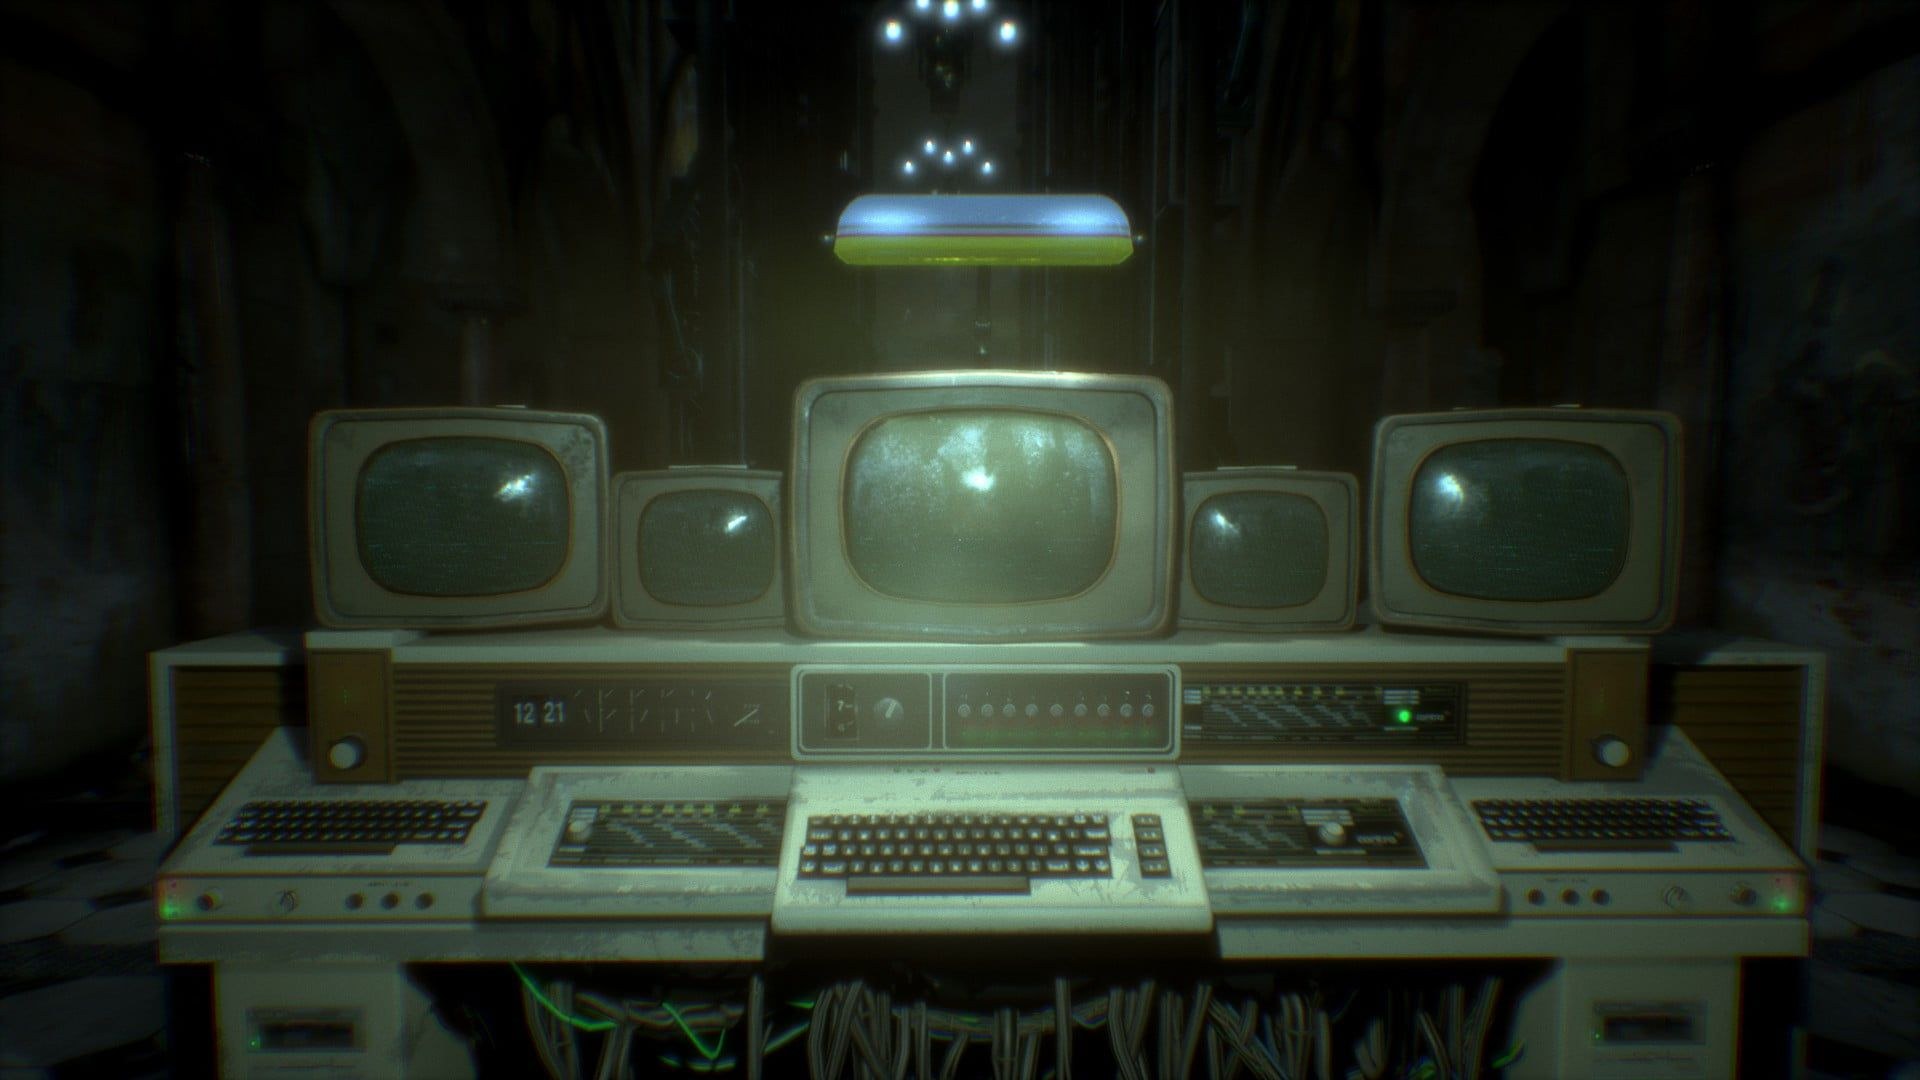 Vintage Computer Space Wallpapers Wallpaper Cave